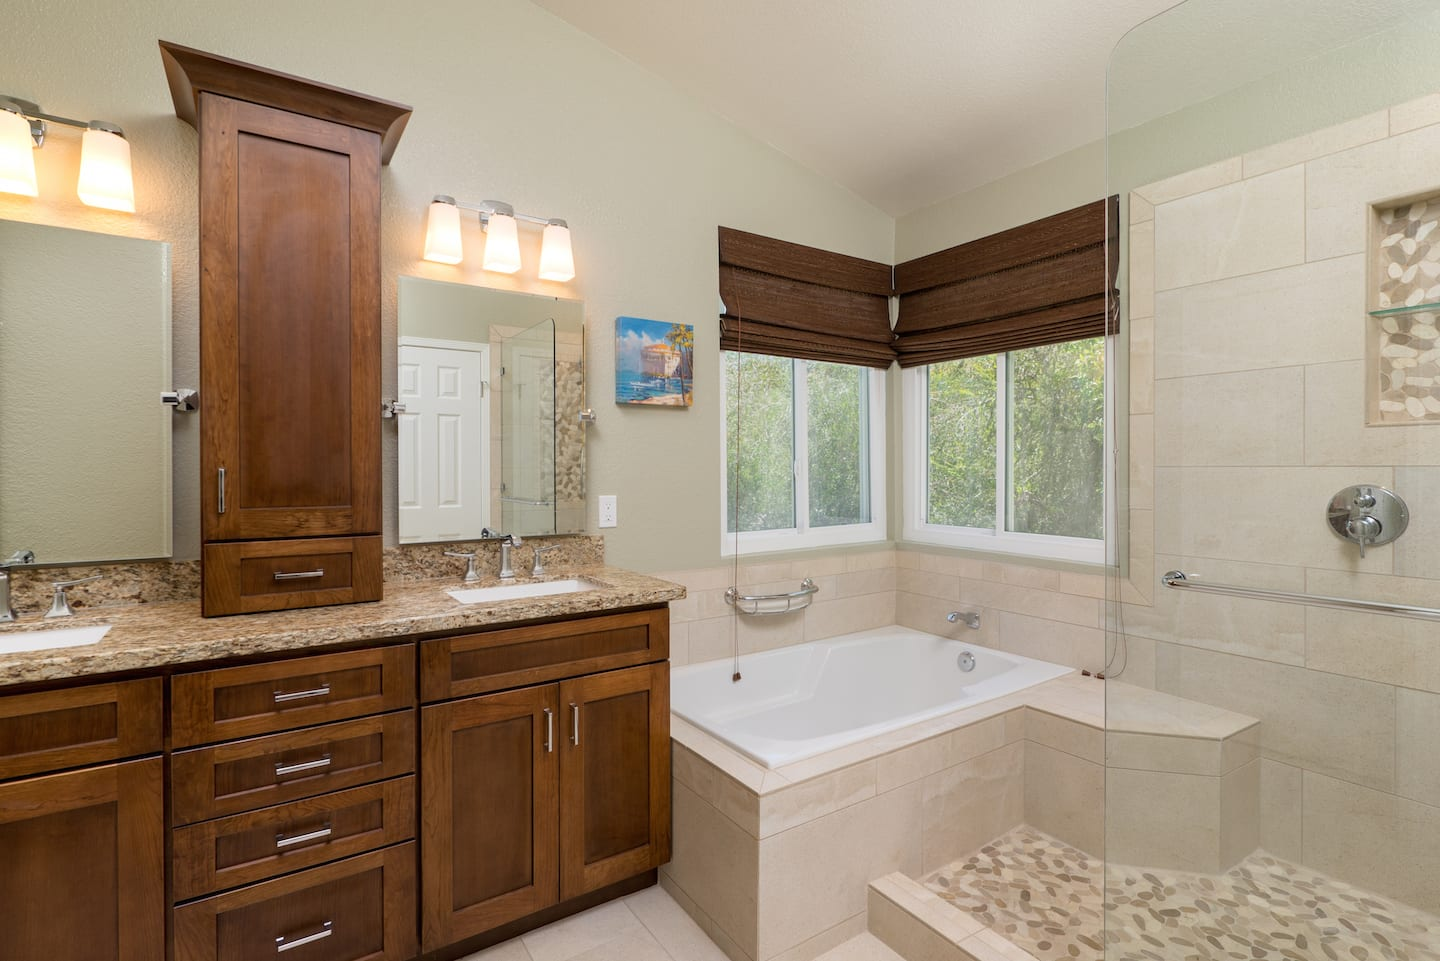 Merveilleux Remodeled Bathroom With Cabinets, Tile And Tub